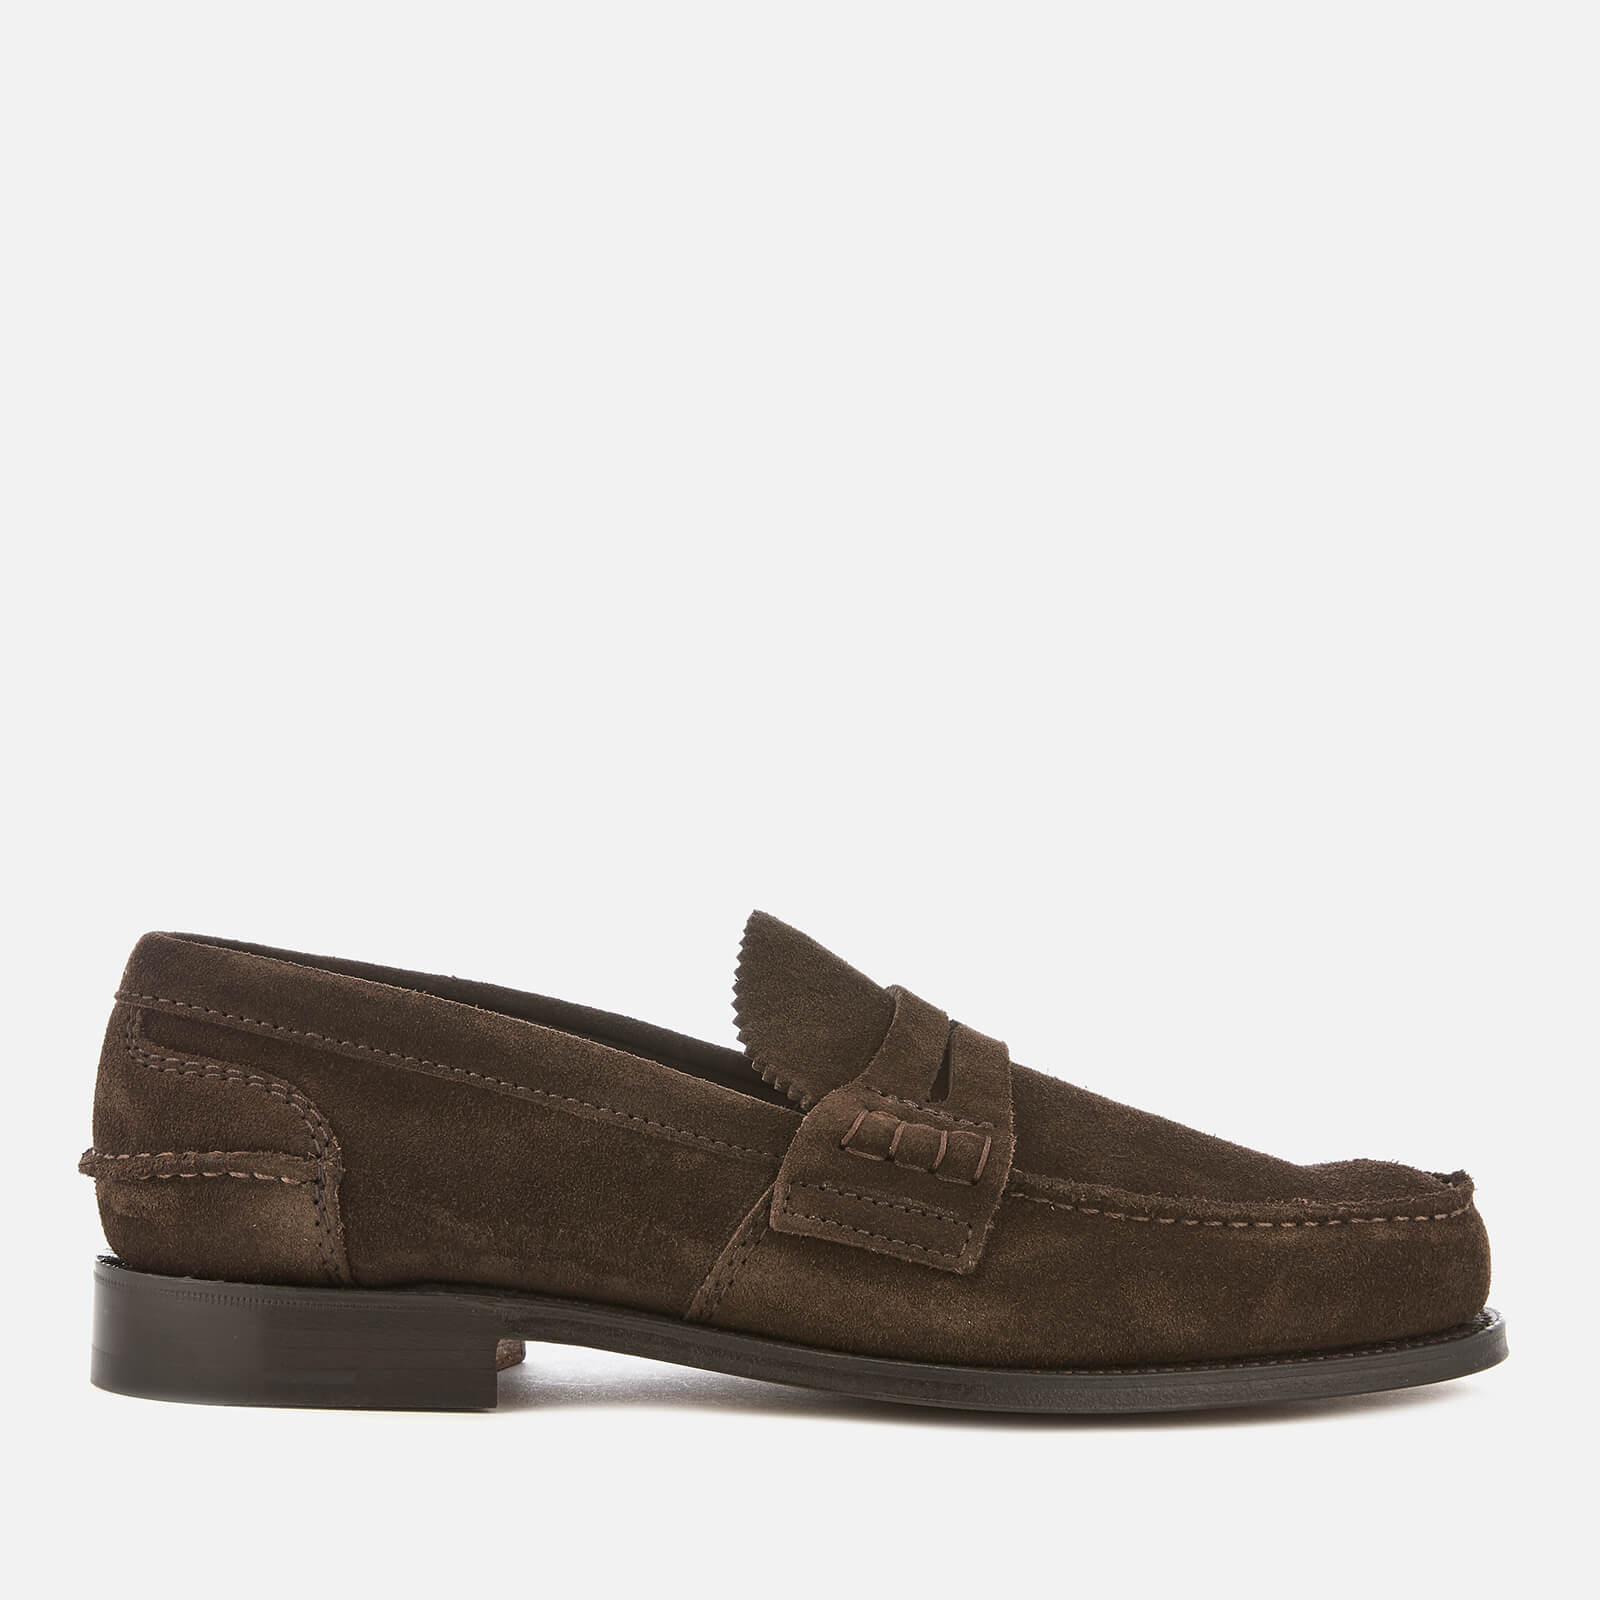 acc406044f4 Church s Men s Pembrey Suede Loafers - Brown - Free UK Delivery over £50